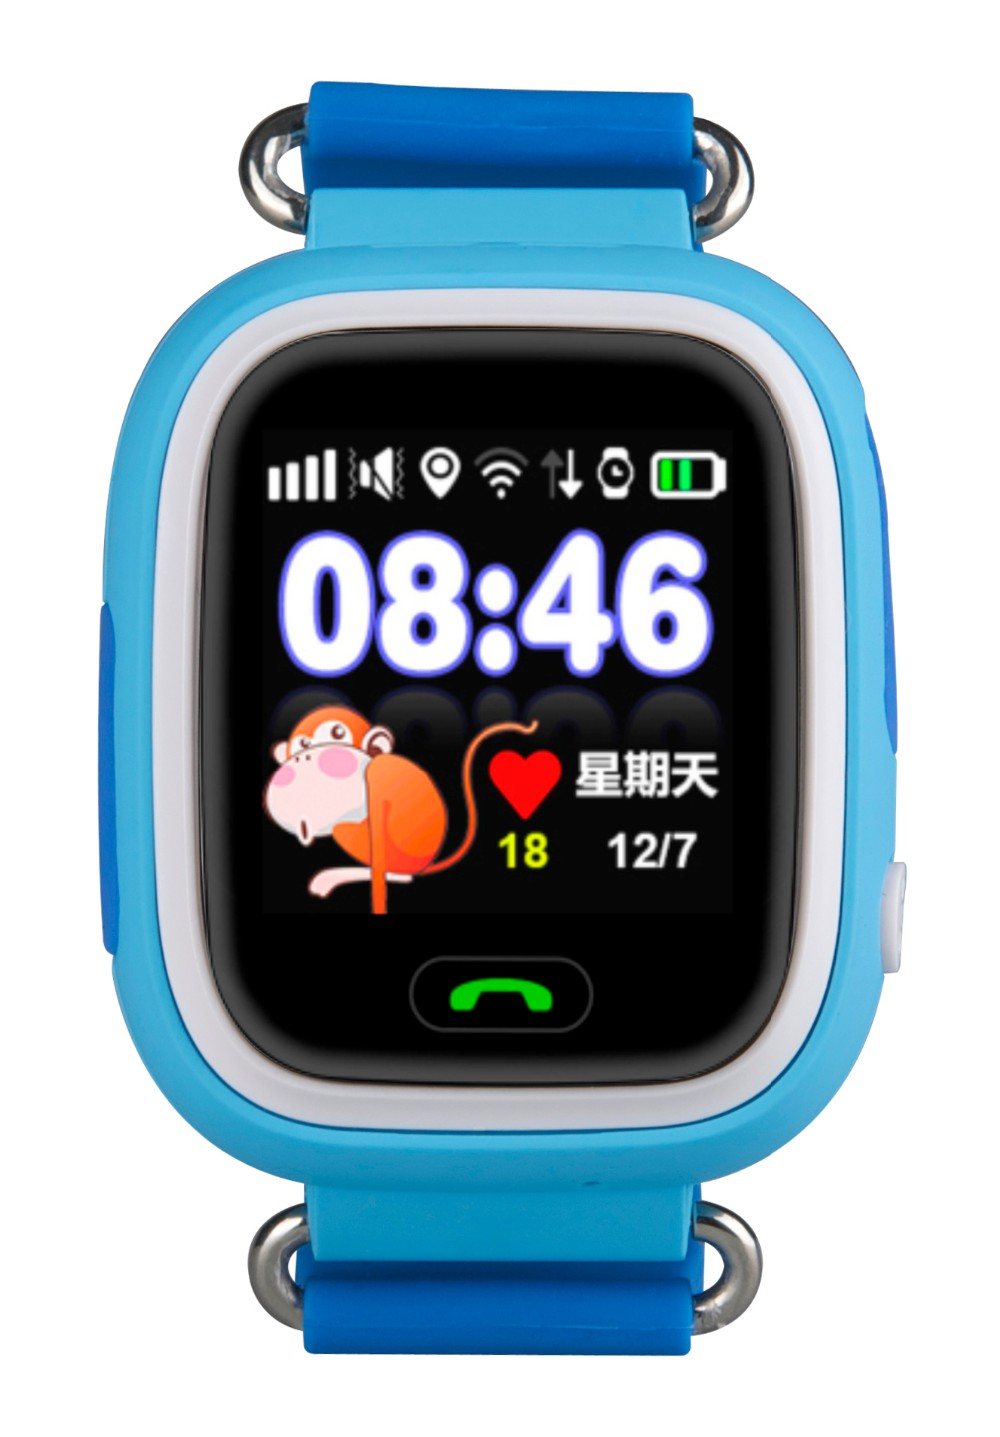 new arrival touch screen gps tracker watch for kids with sos emergency call function tm s002b. Black Bedroom Furniture Sets. Home Design Ideas